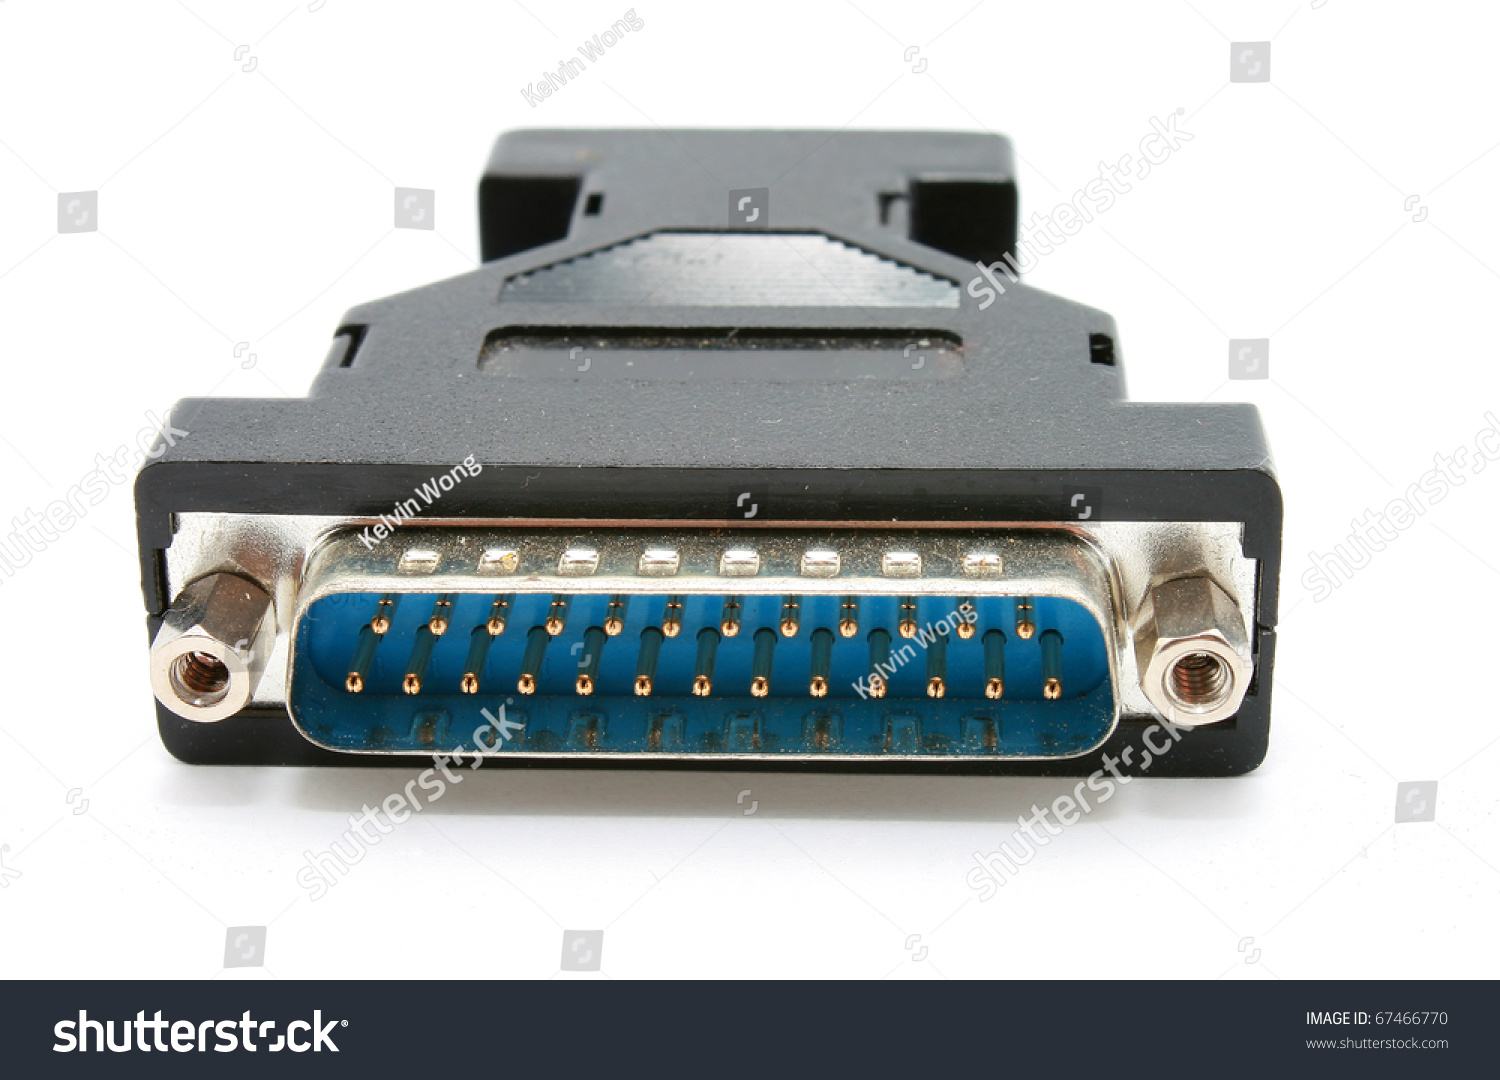 Computer Monitor Plug : D sub plug and socket of blue adapter computer monitor